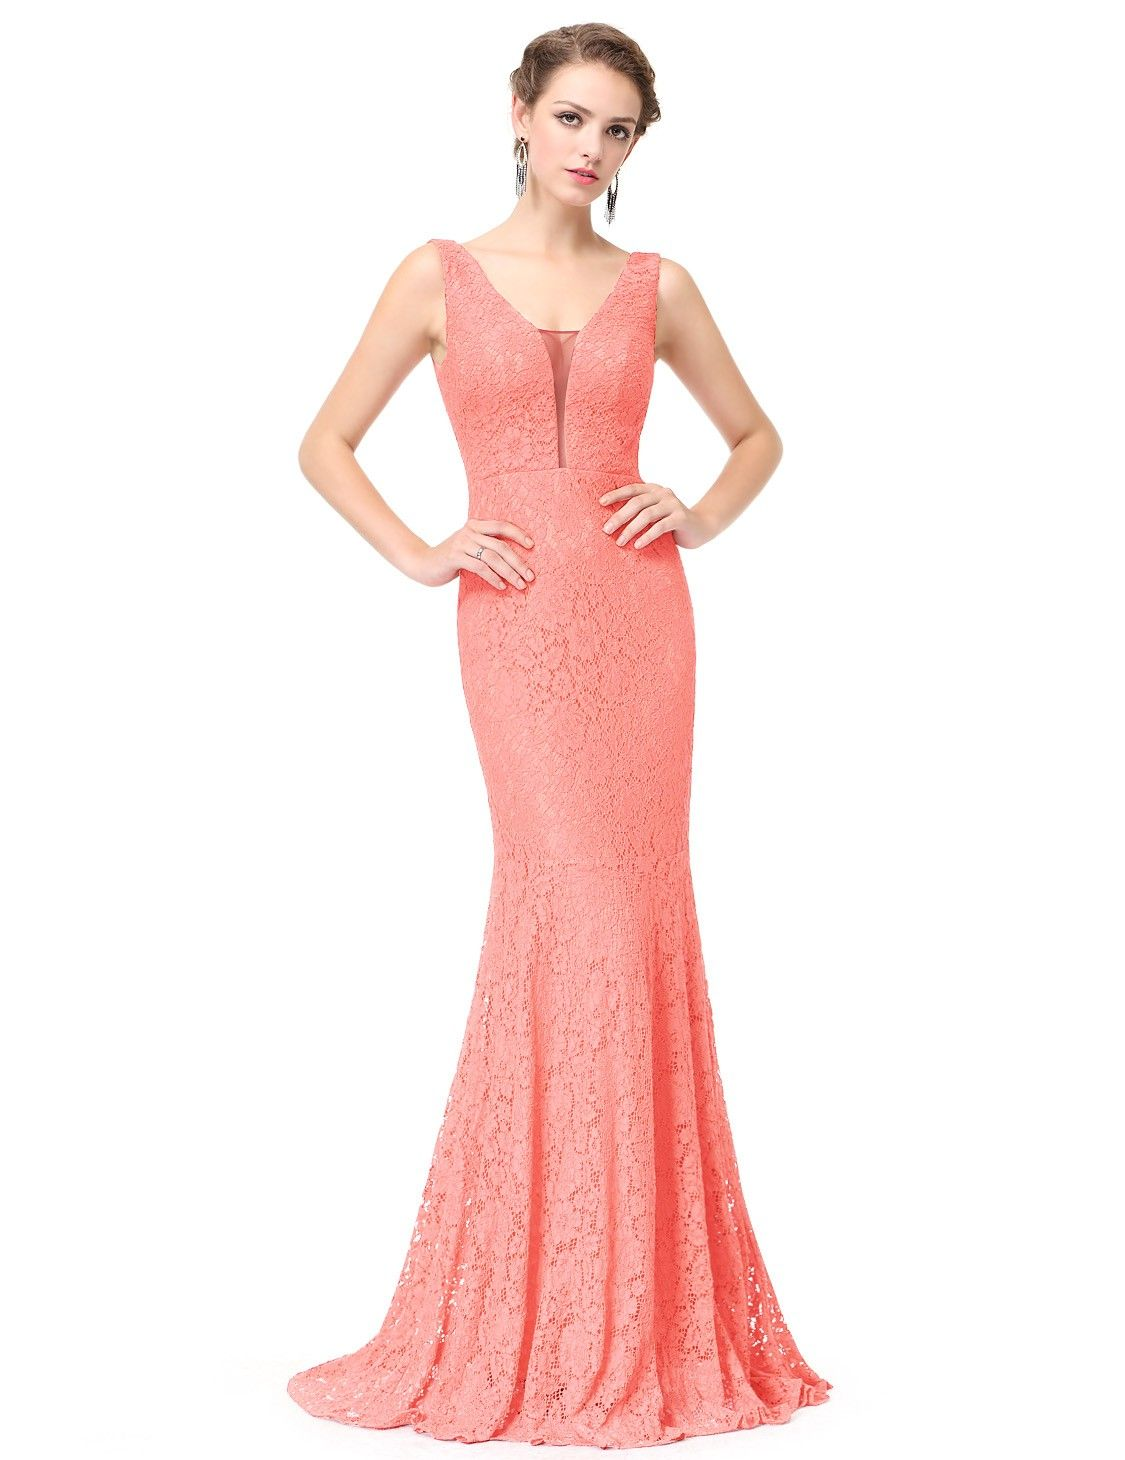 Mermaid Style Evening Dress with Lace